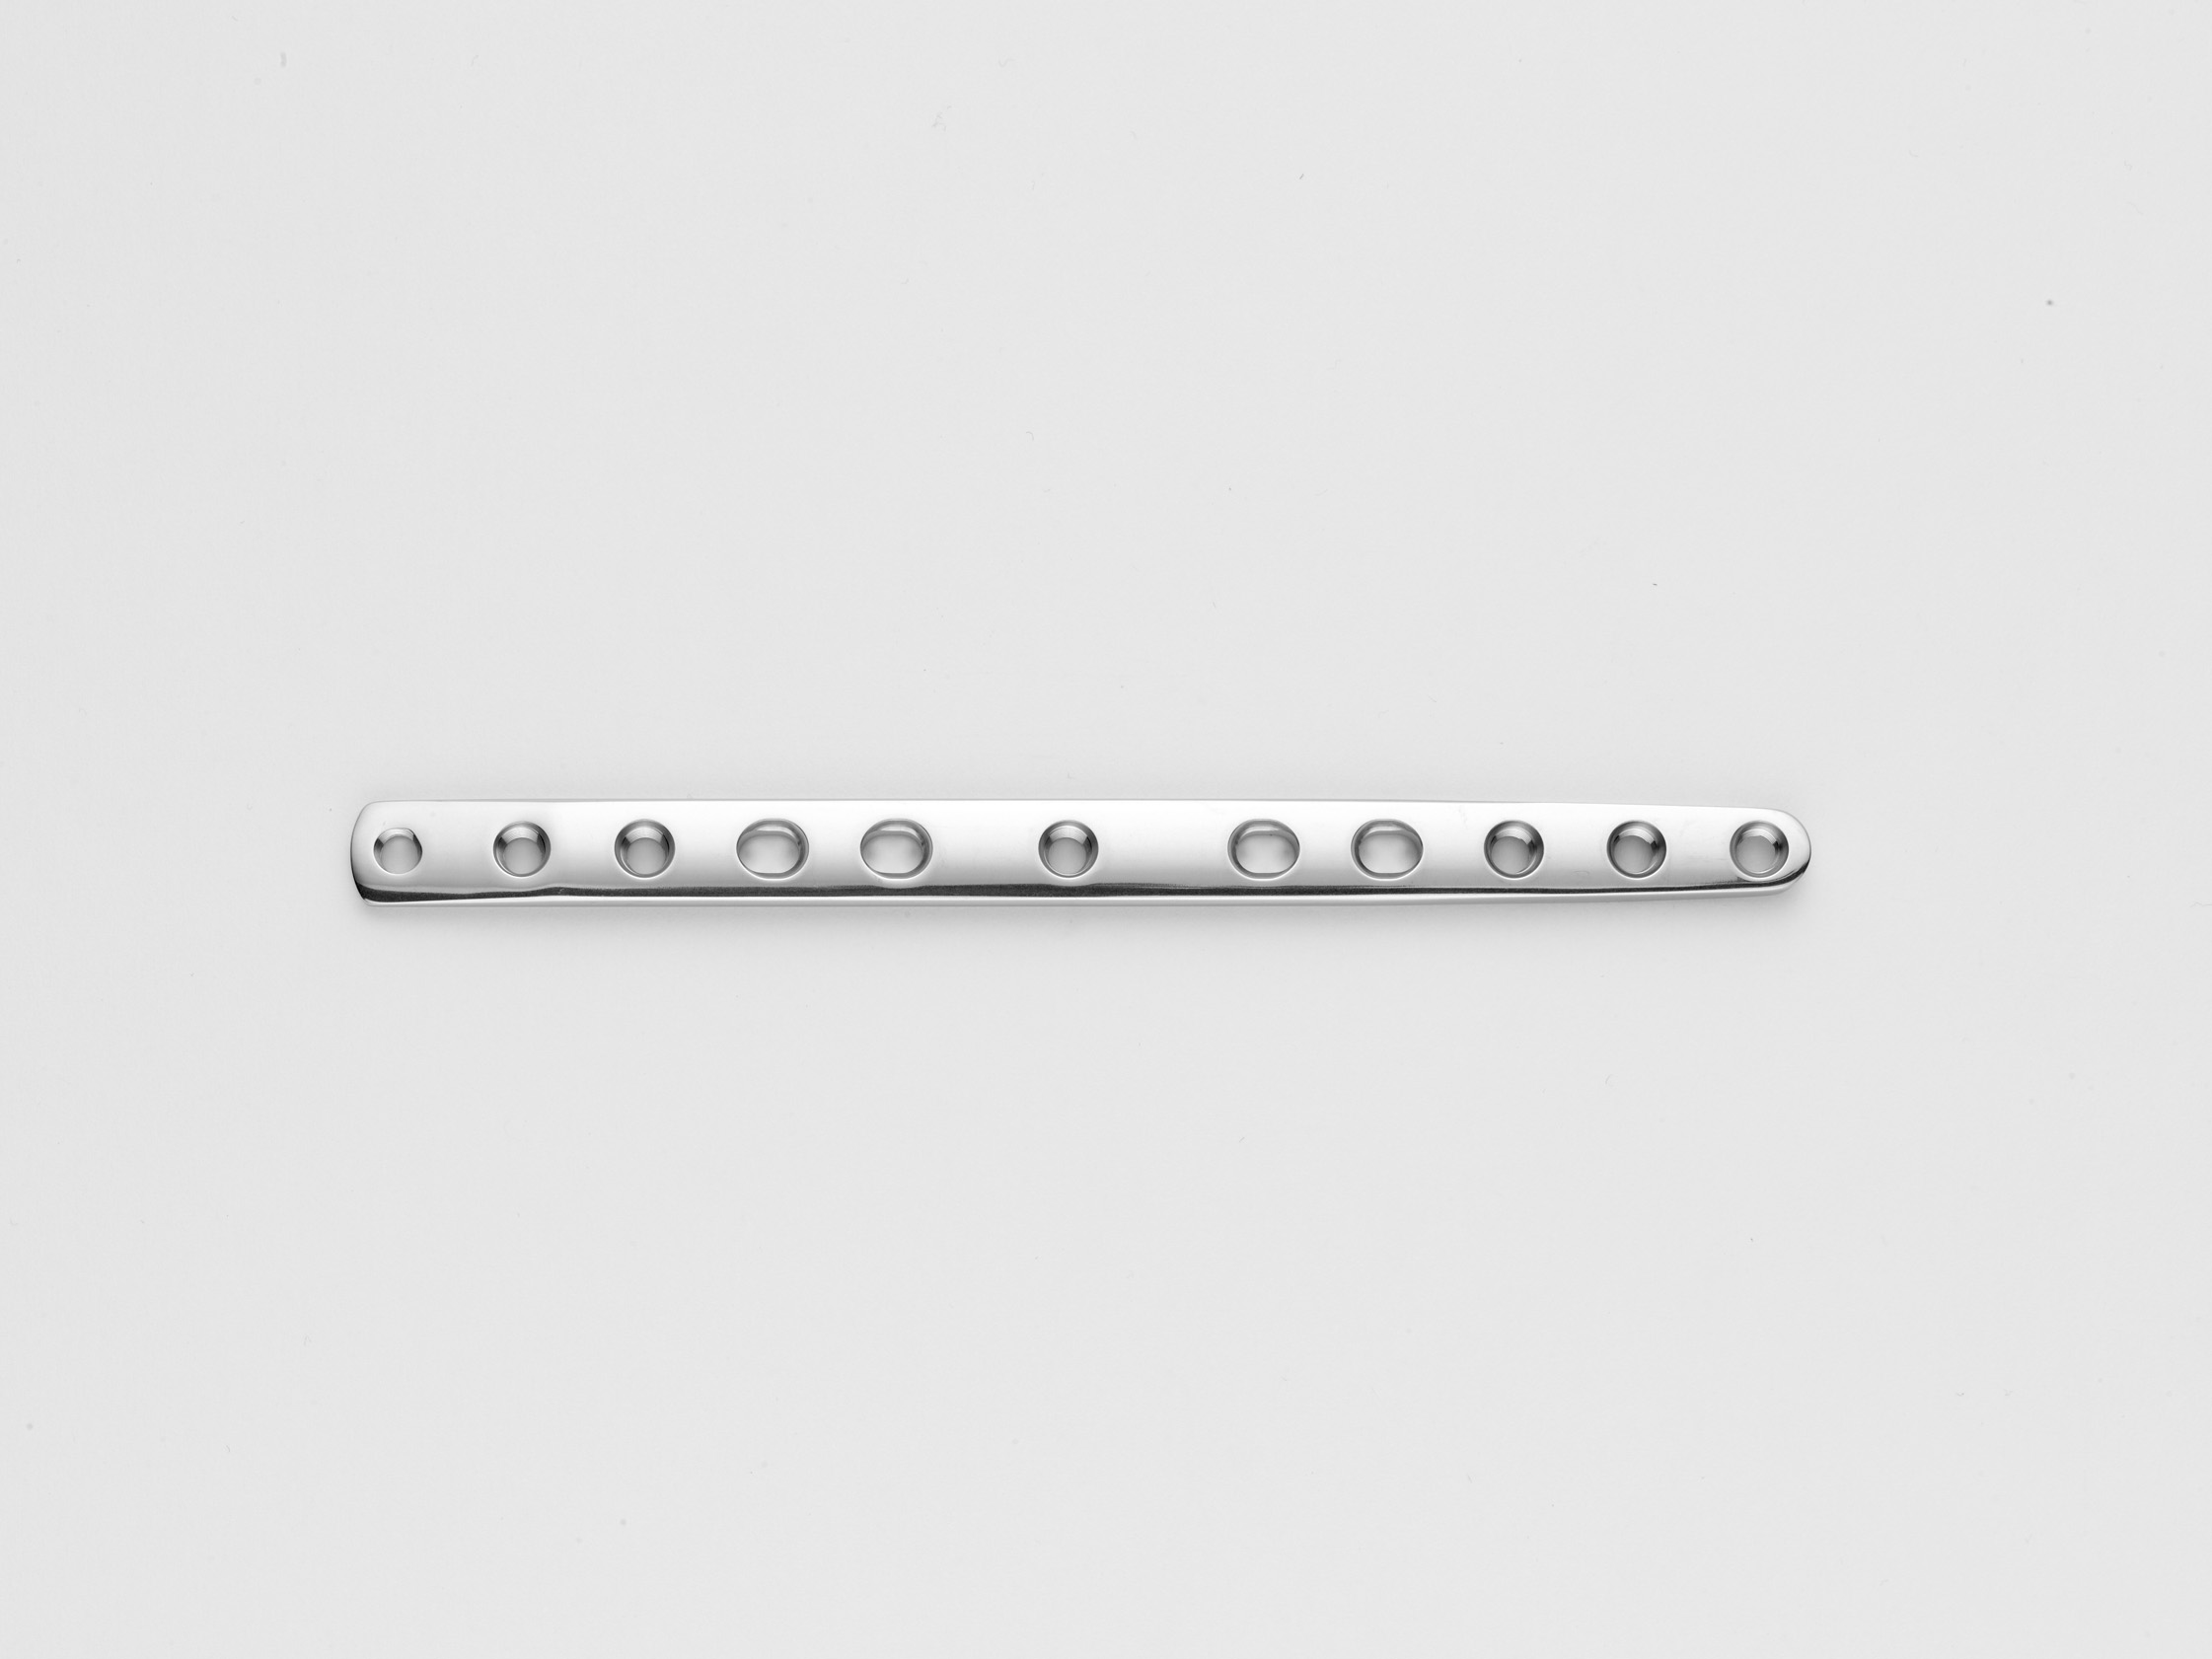 Locking Plates - Arthrodesis